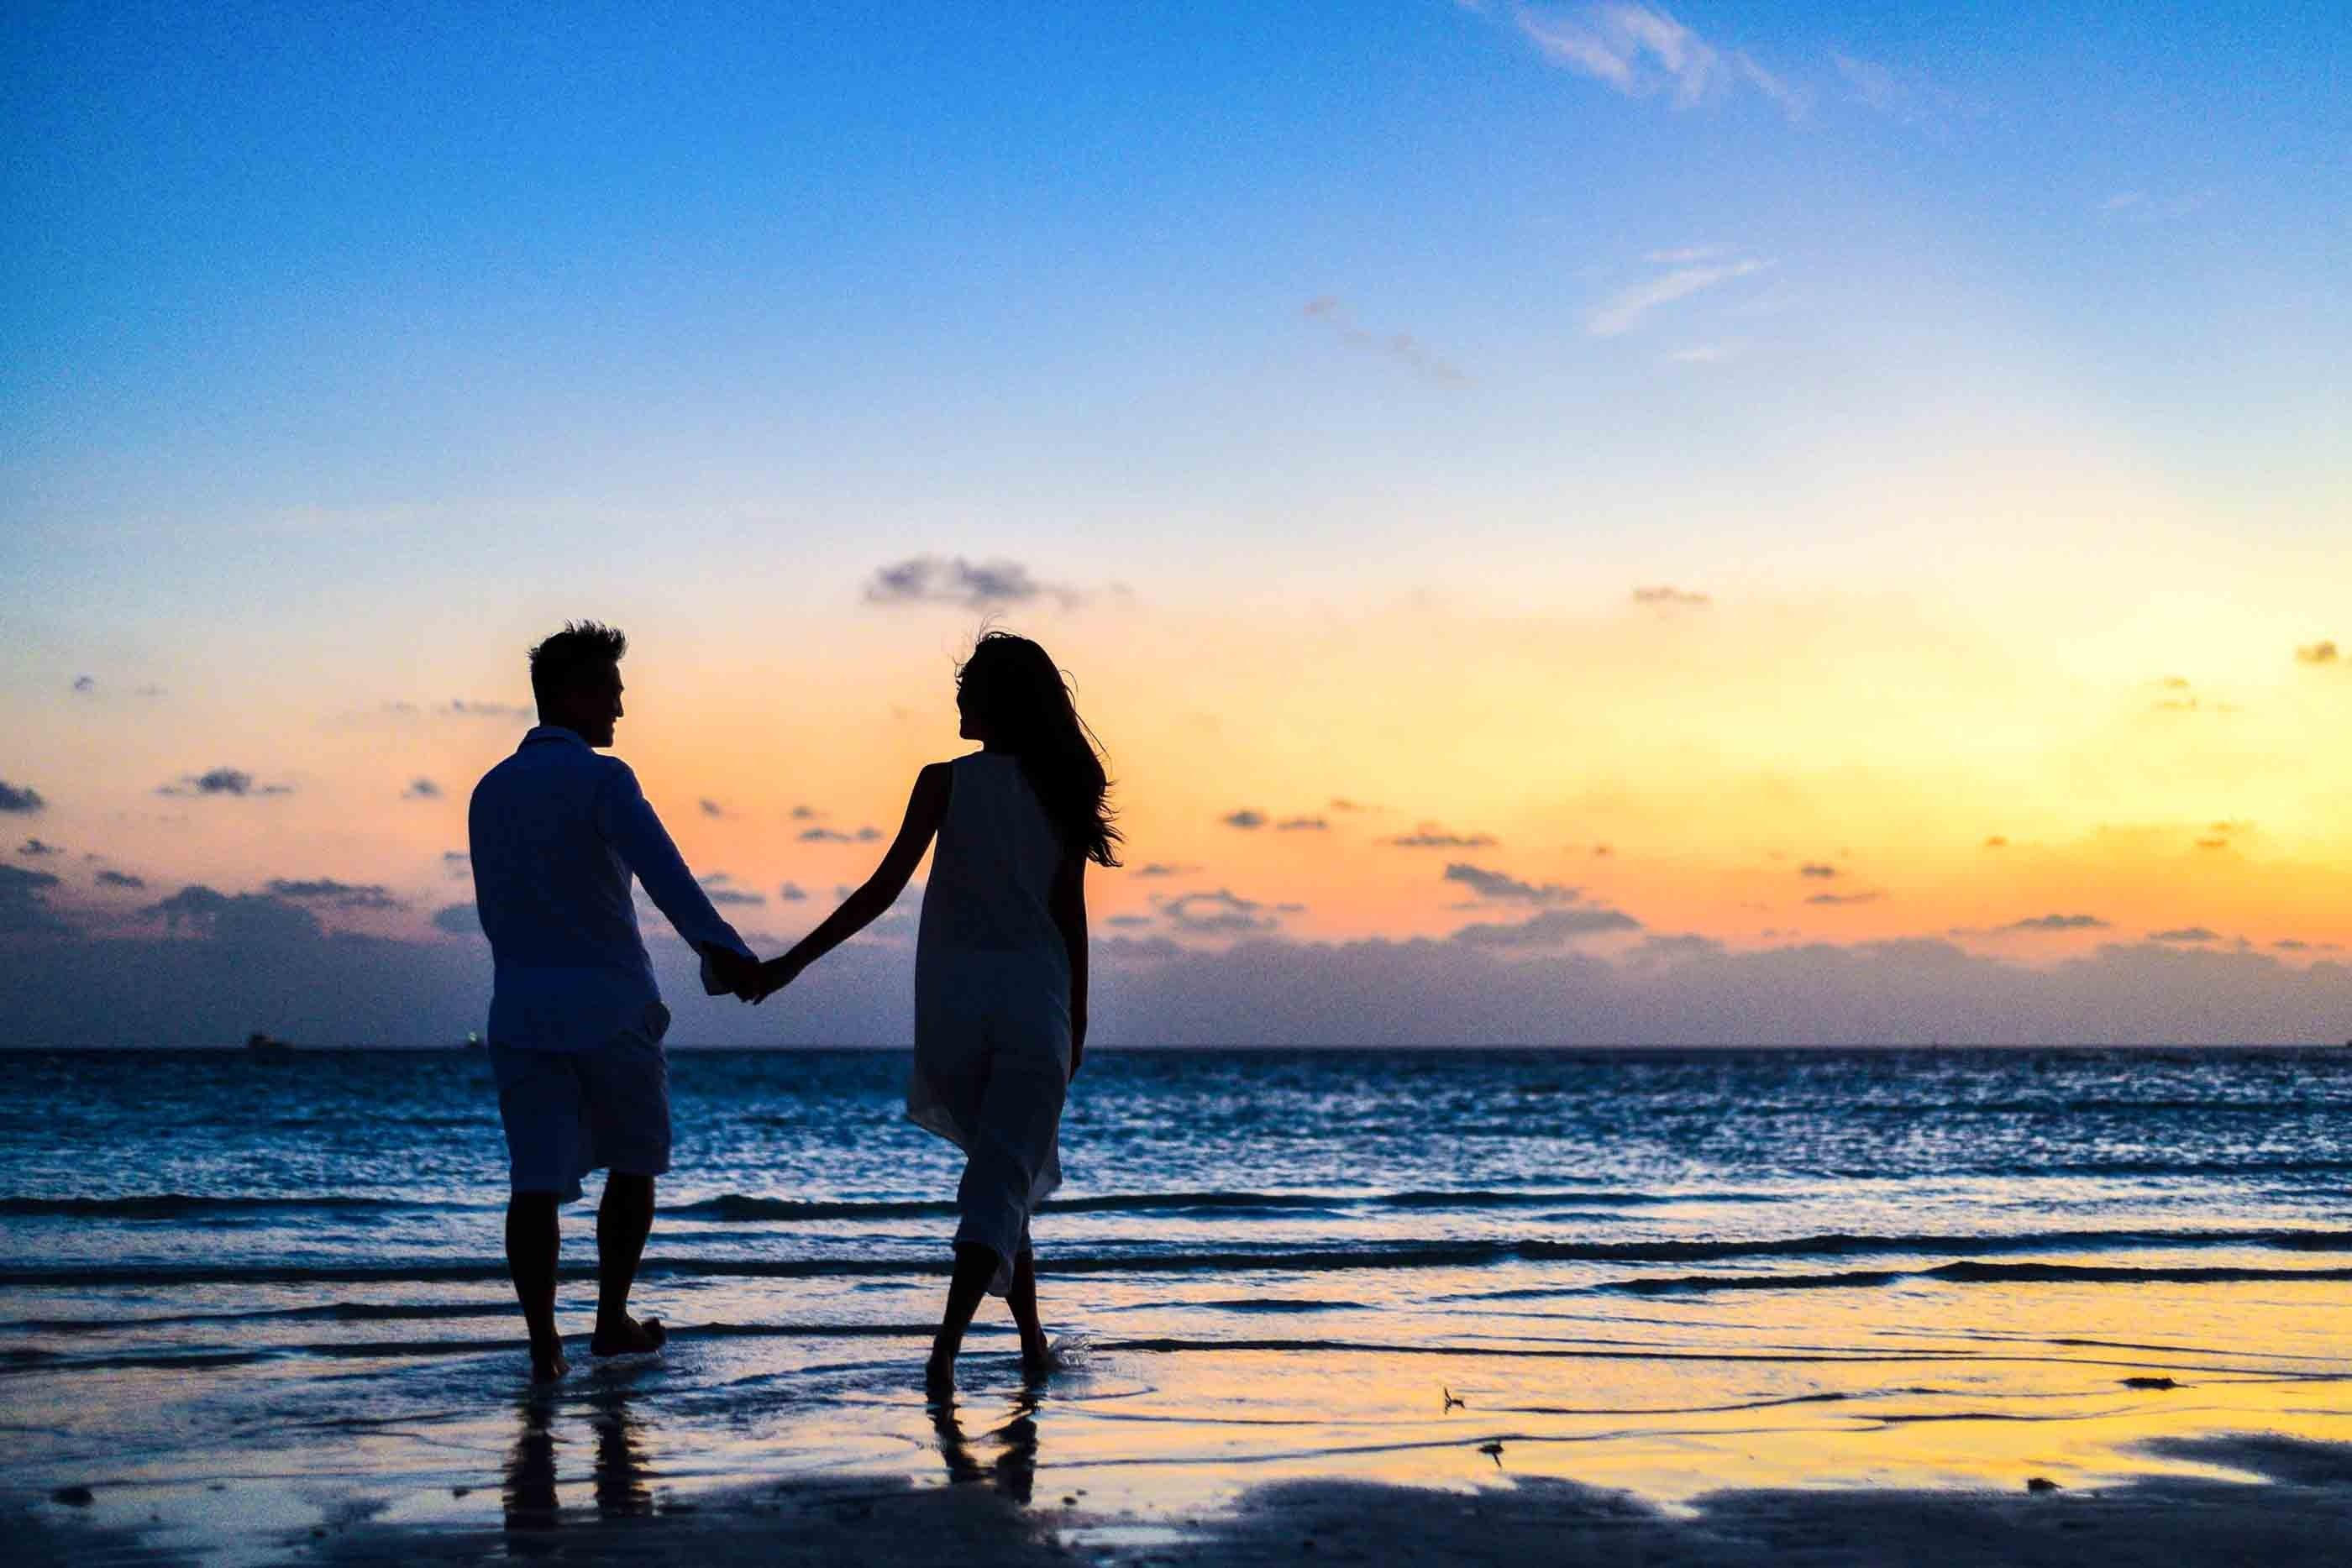 Pictured - A man and a woman holding hands on seashore during sunrise | Source: Pexels